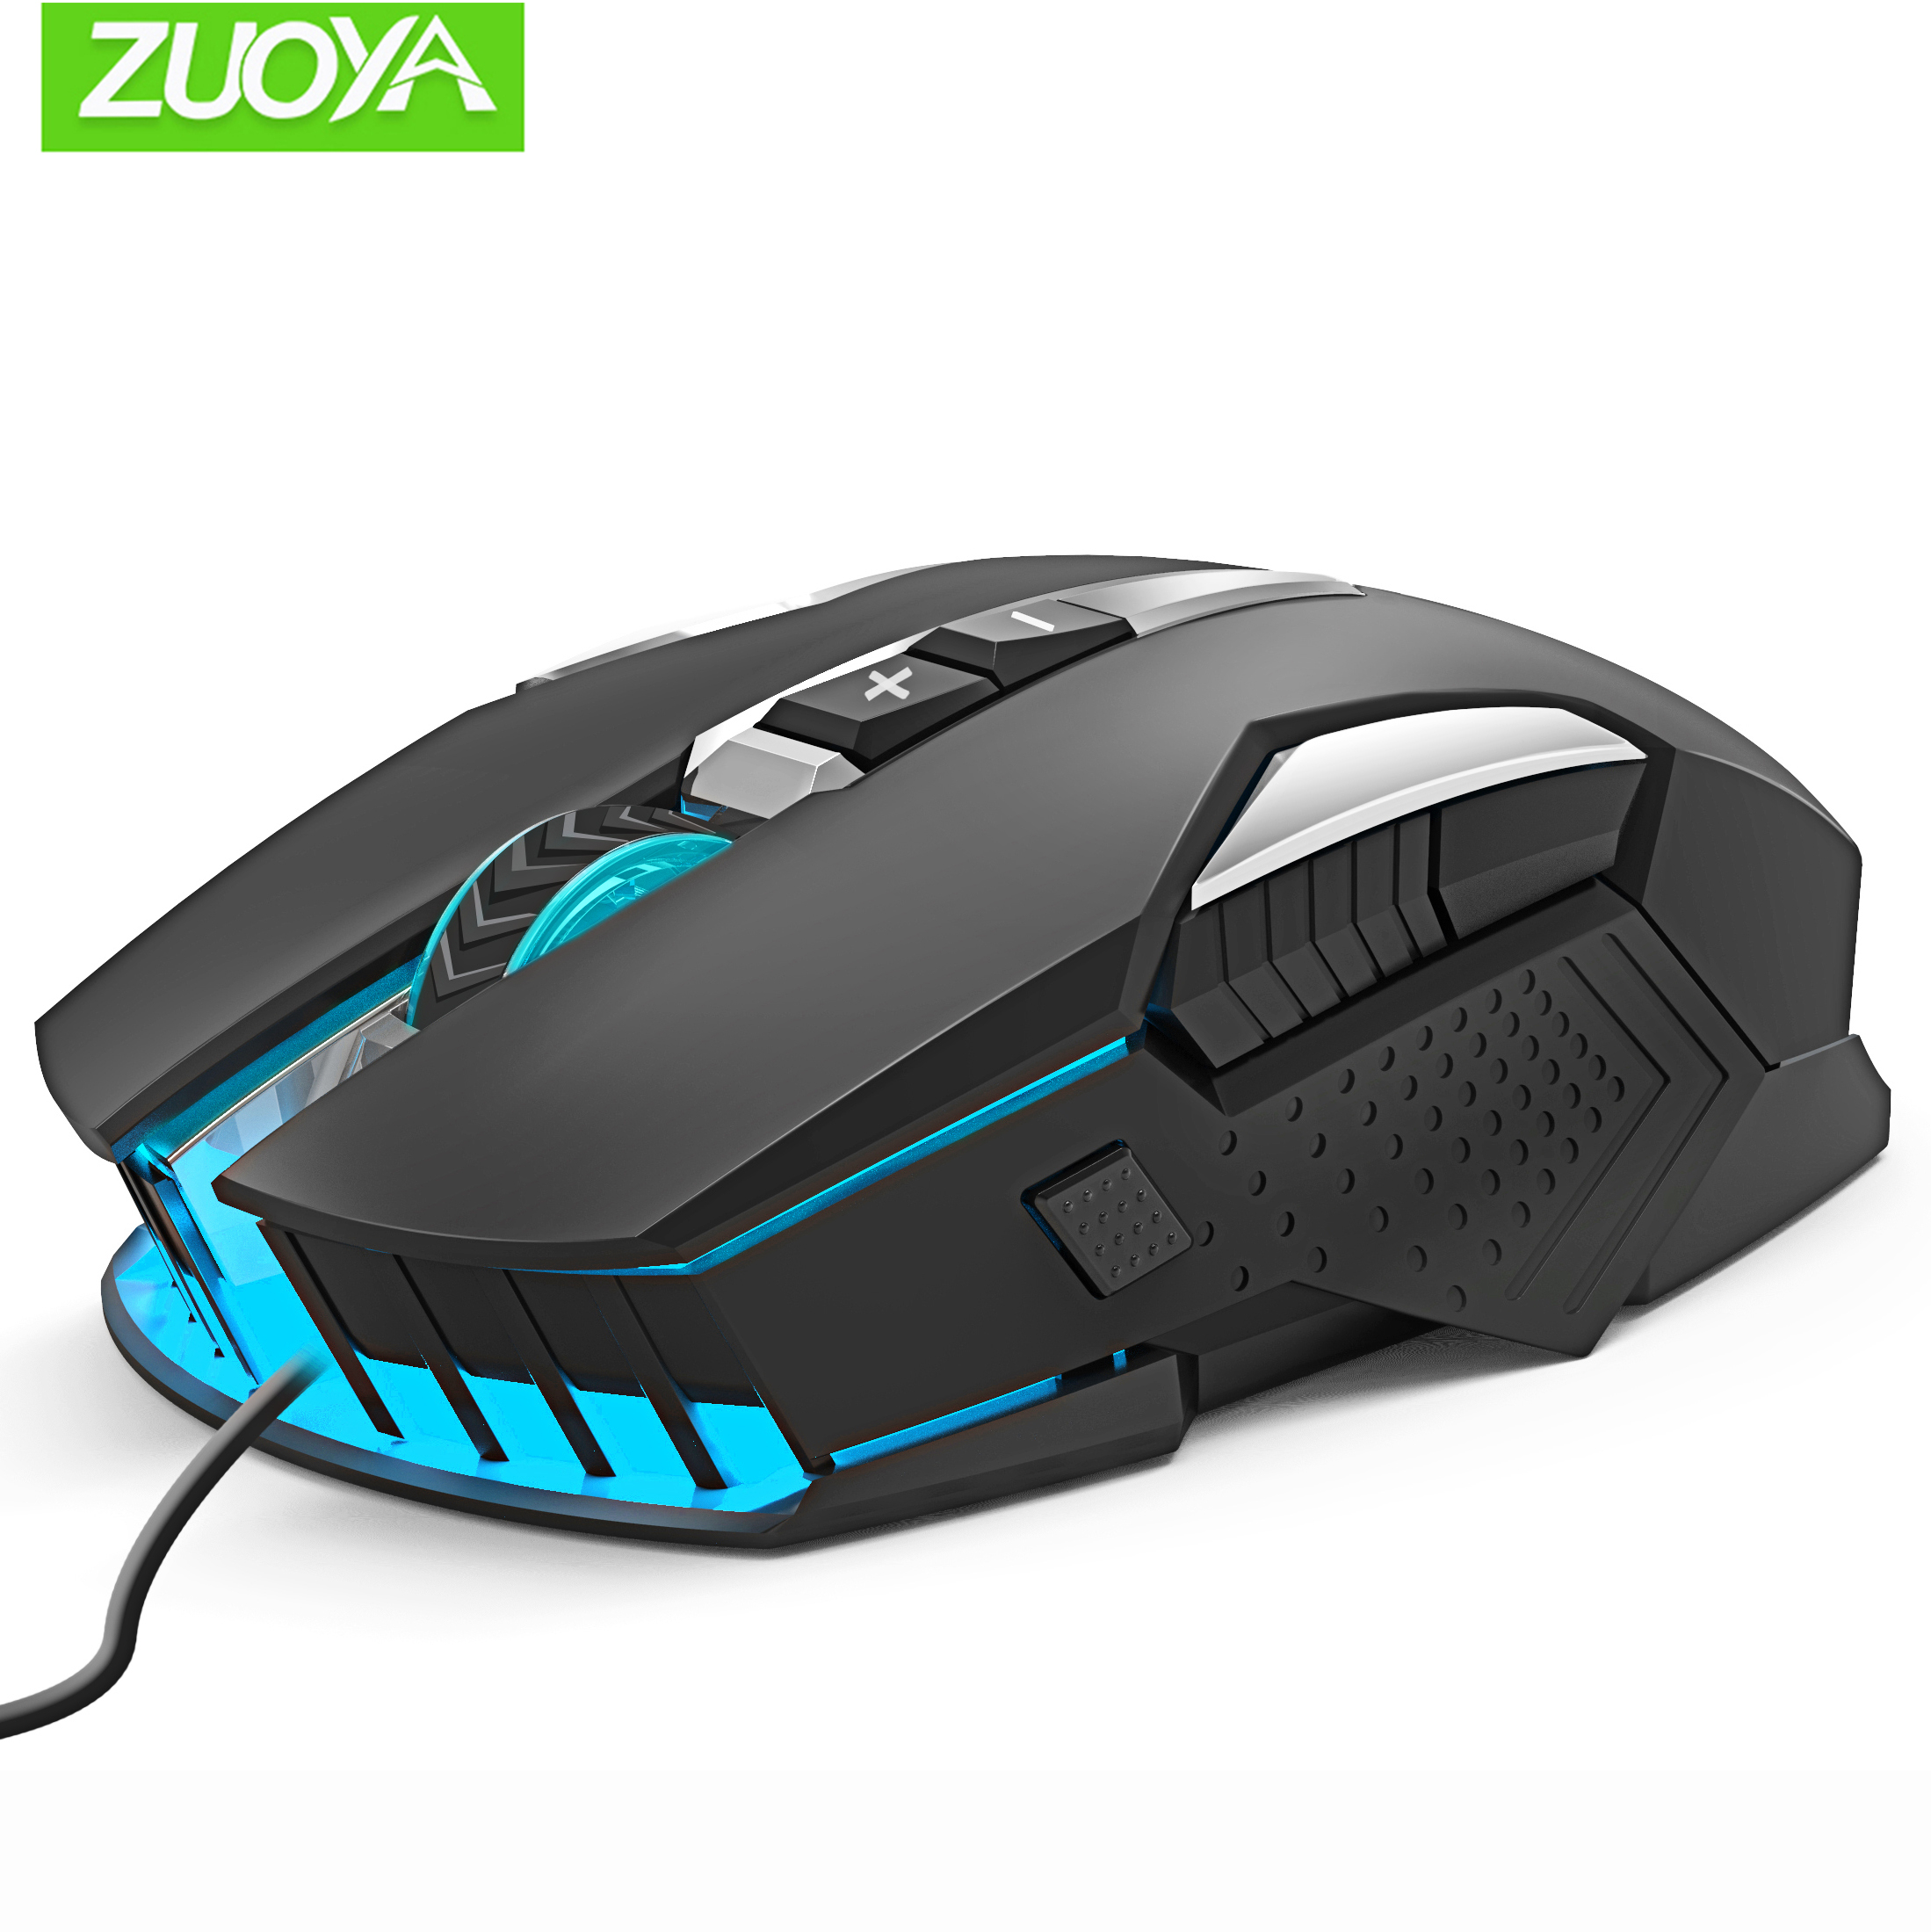 Zuoya Gaming Muis Dpi Verstelbare Bedrade Muis Usb Optische Led Computer Muizen Voor Laptop Pc Game Professionele Gamer title=